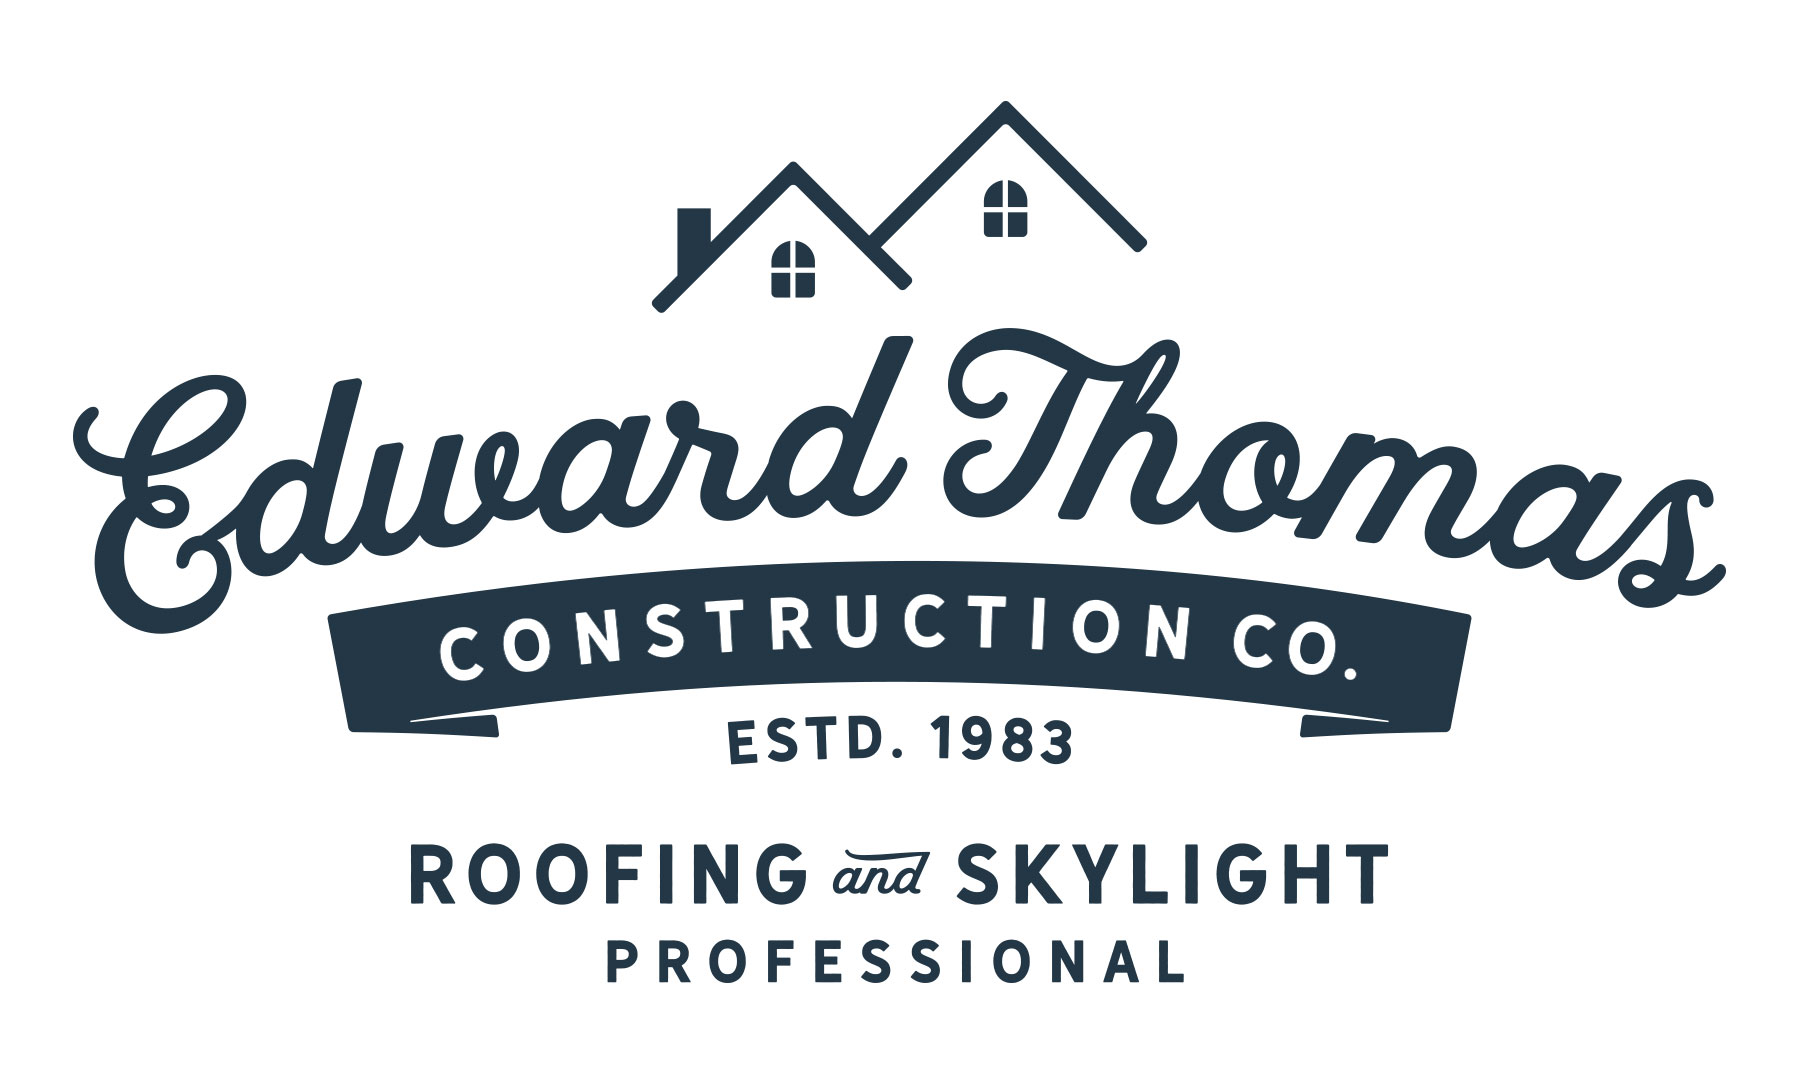 Edward Thomas Construction Co.